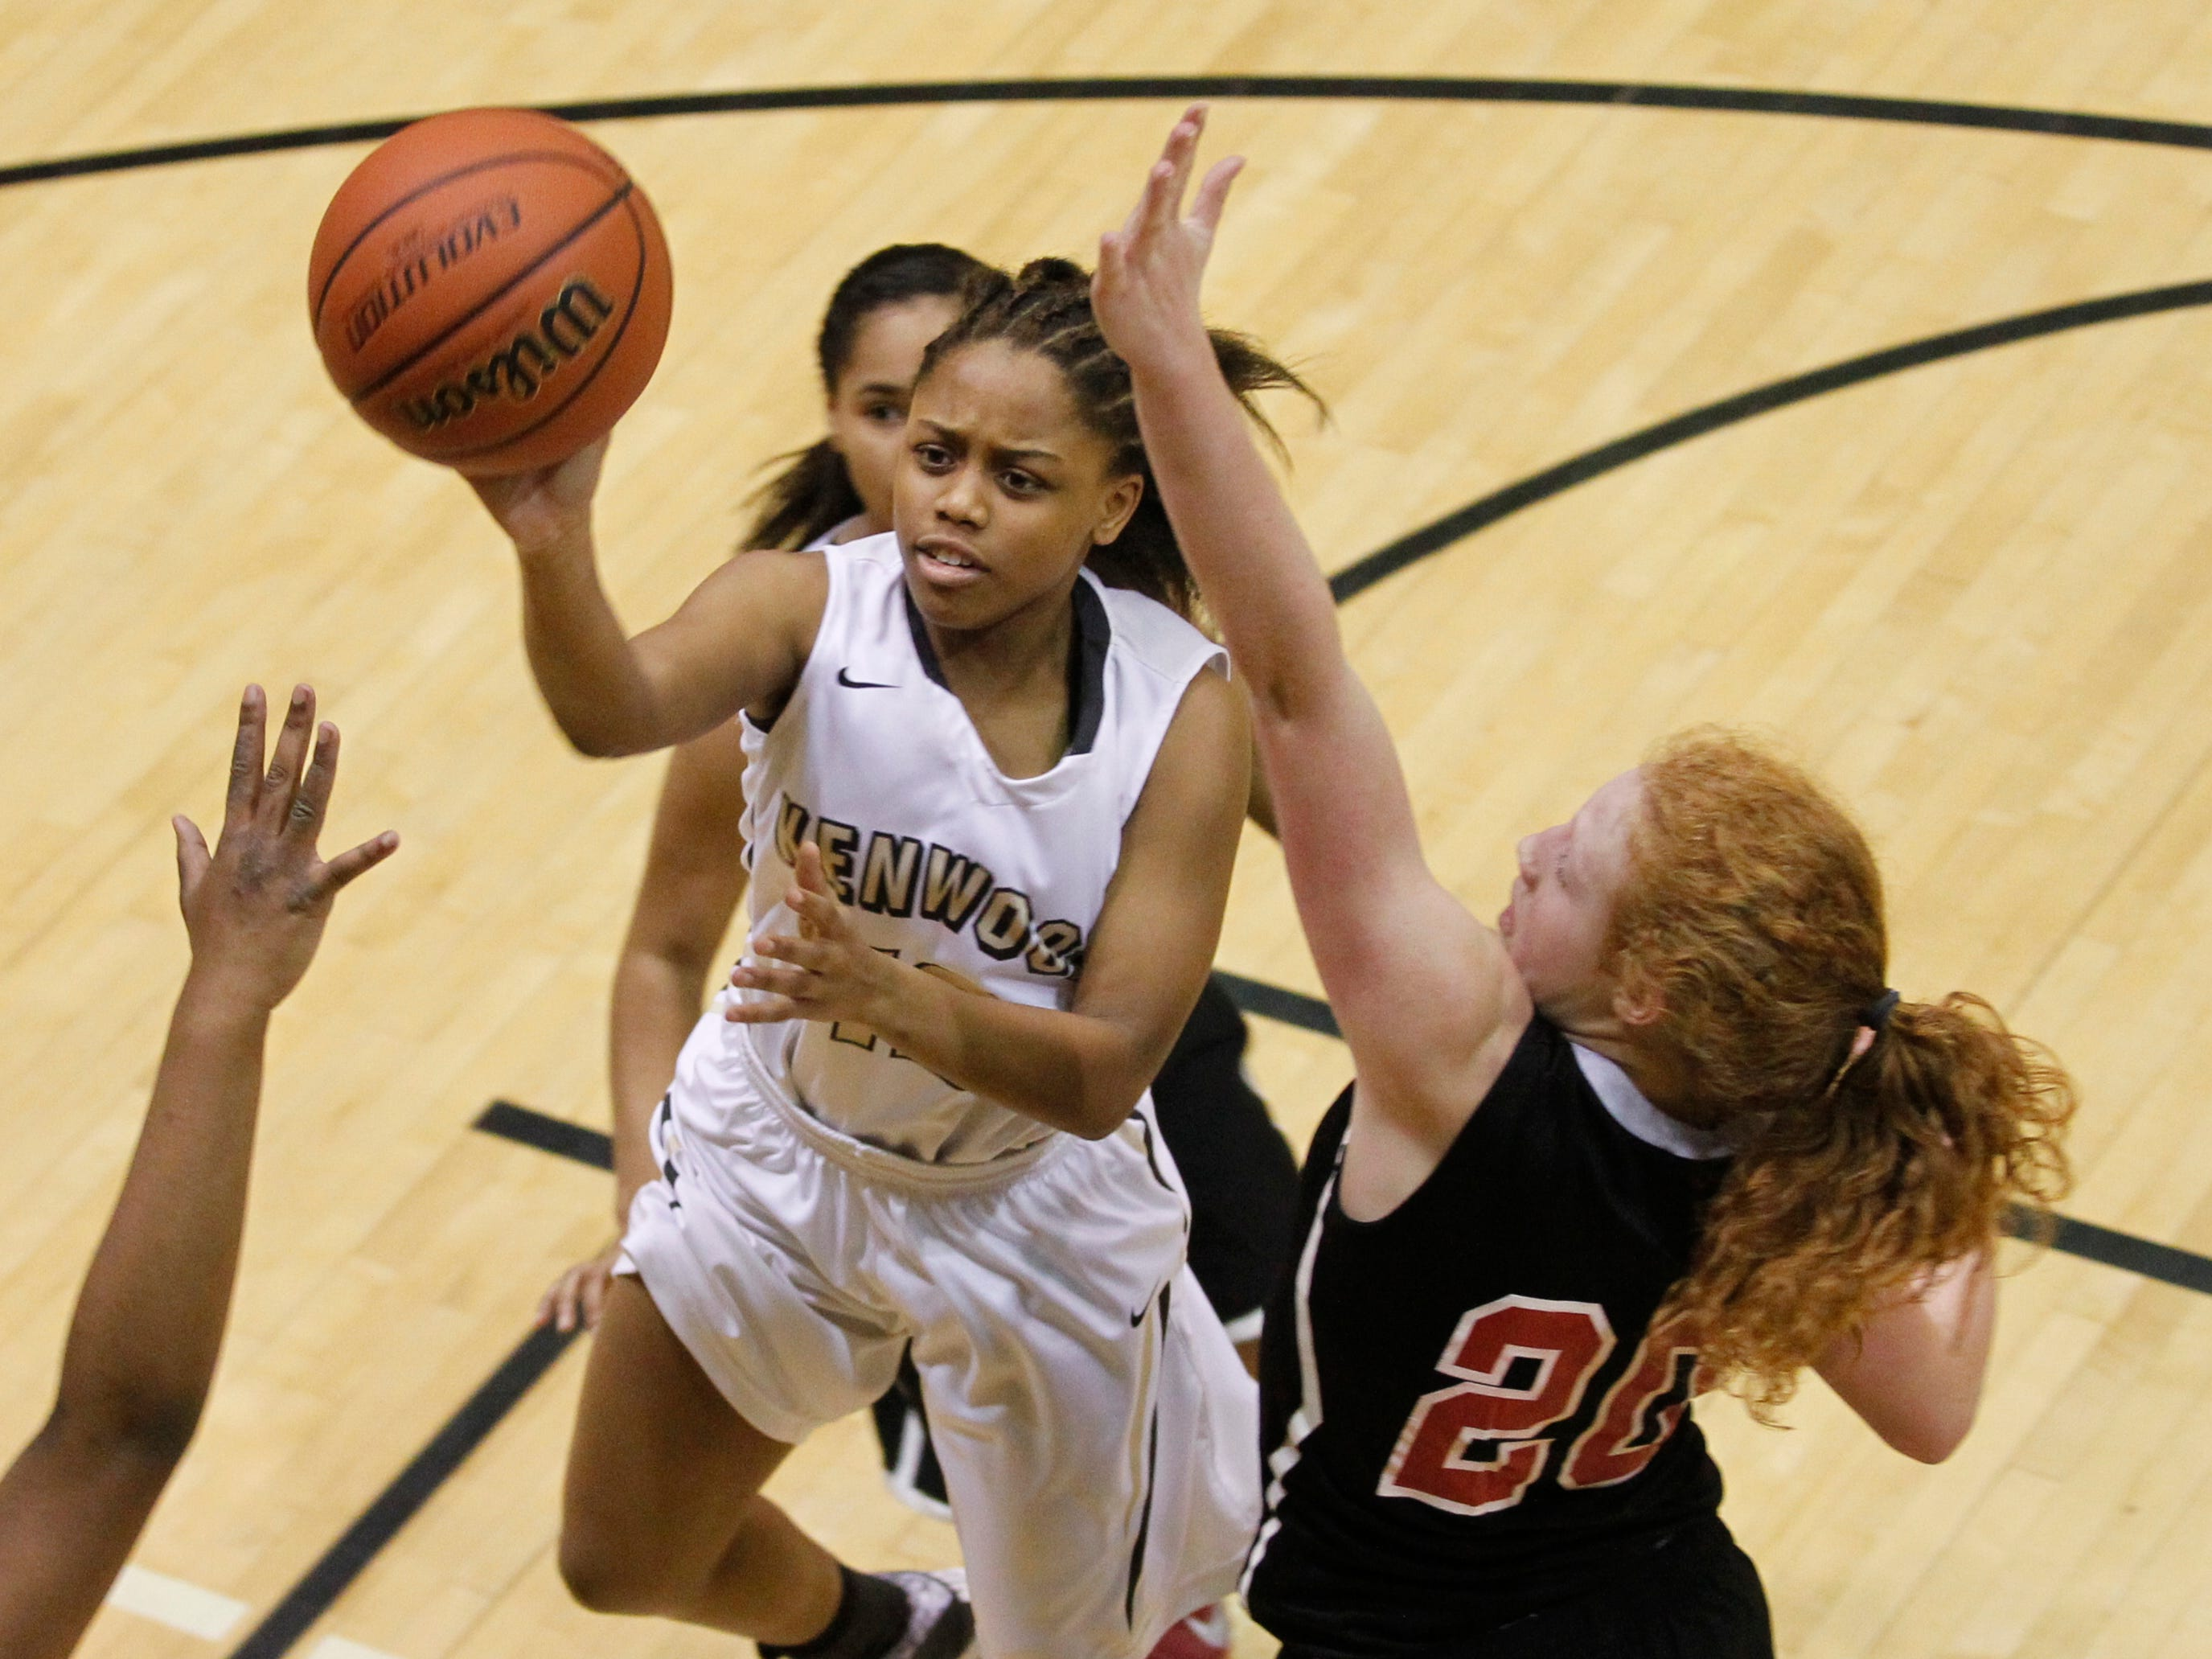 Kenwood's Malia Umrani shoots around Rossview's Haylee Croom during Friday night's District 10-AAA action at Kenwood.